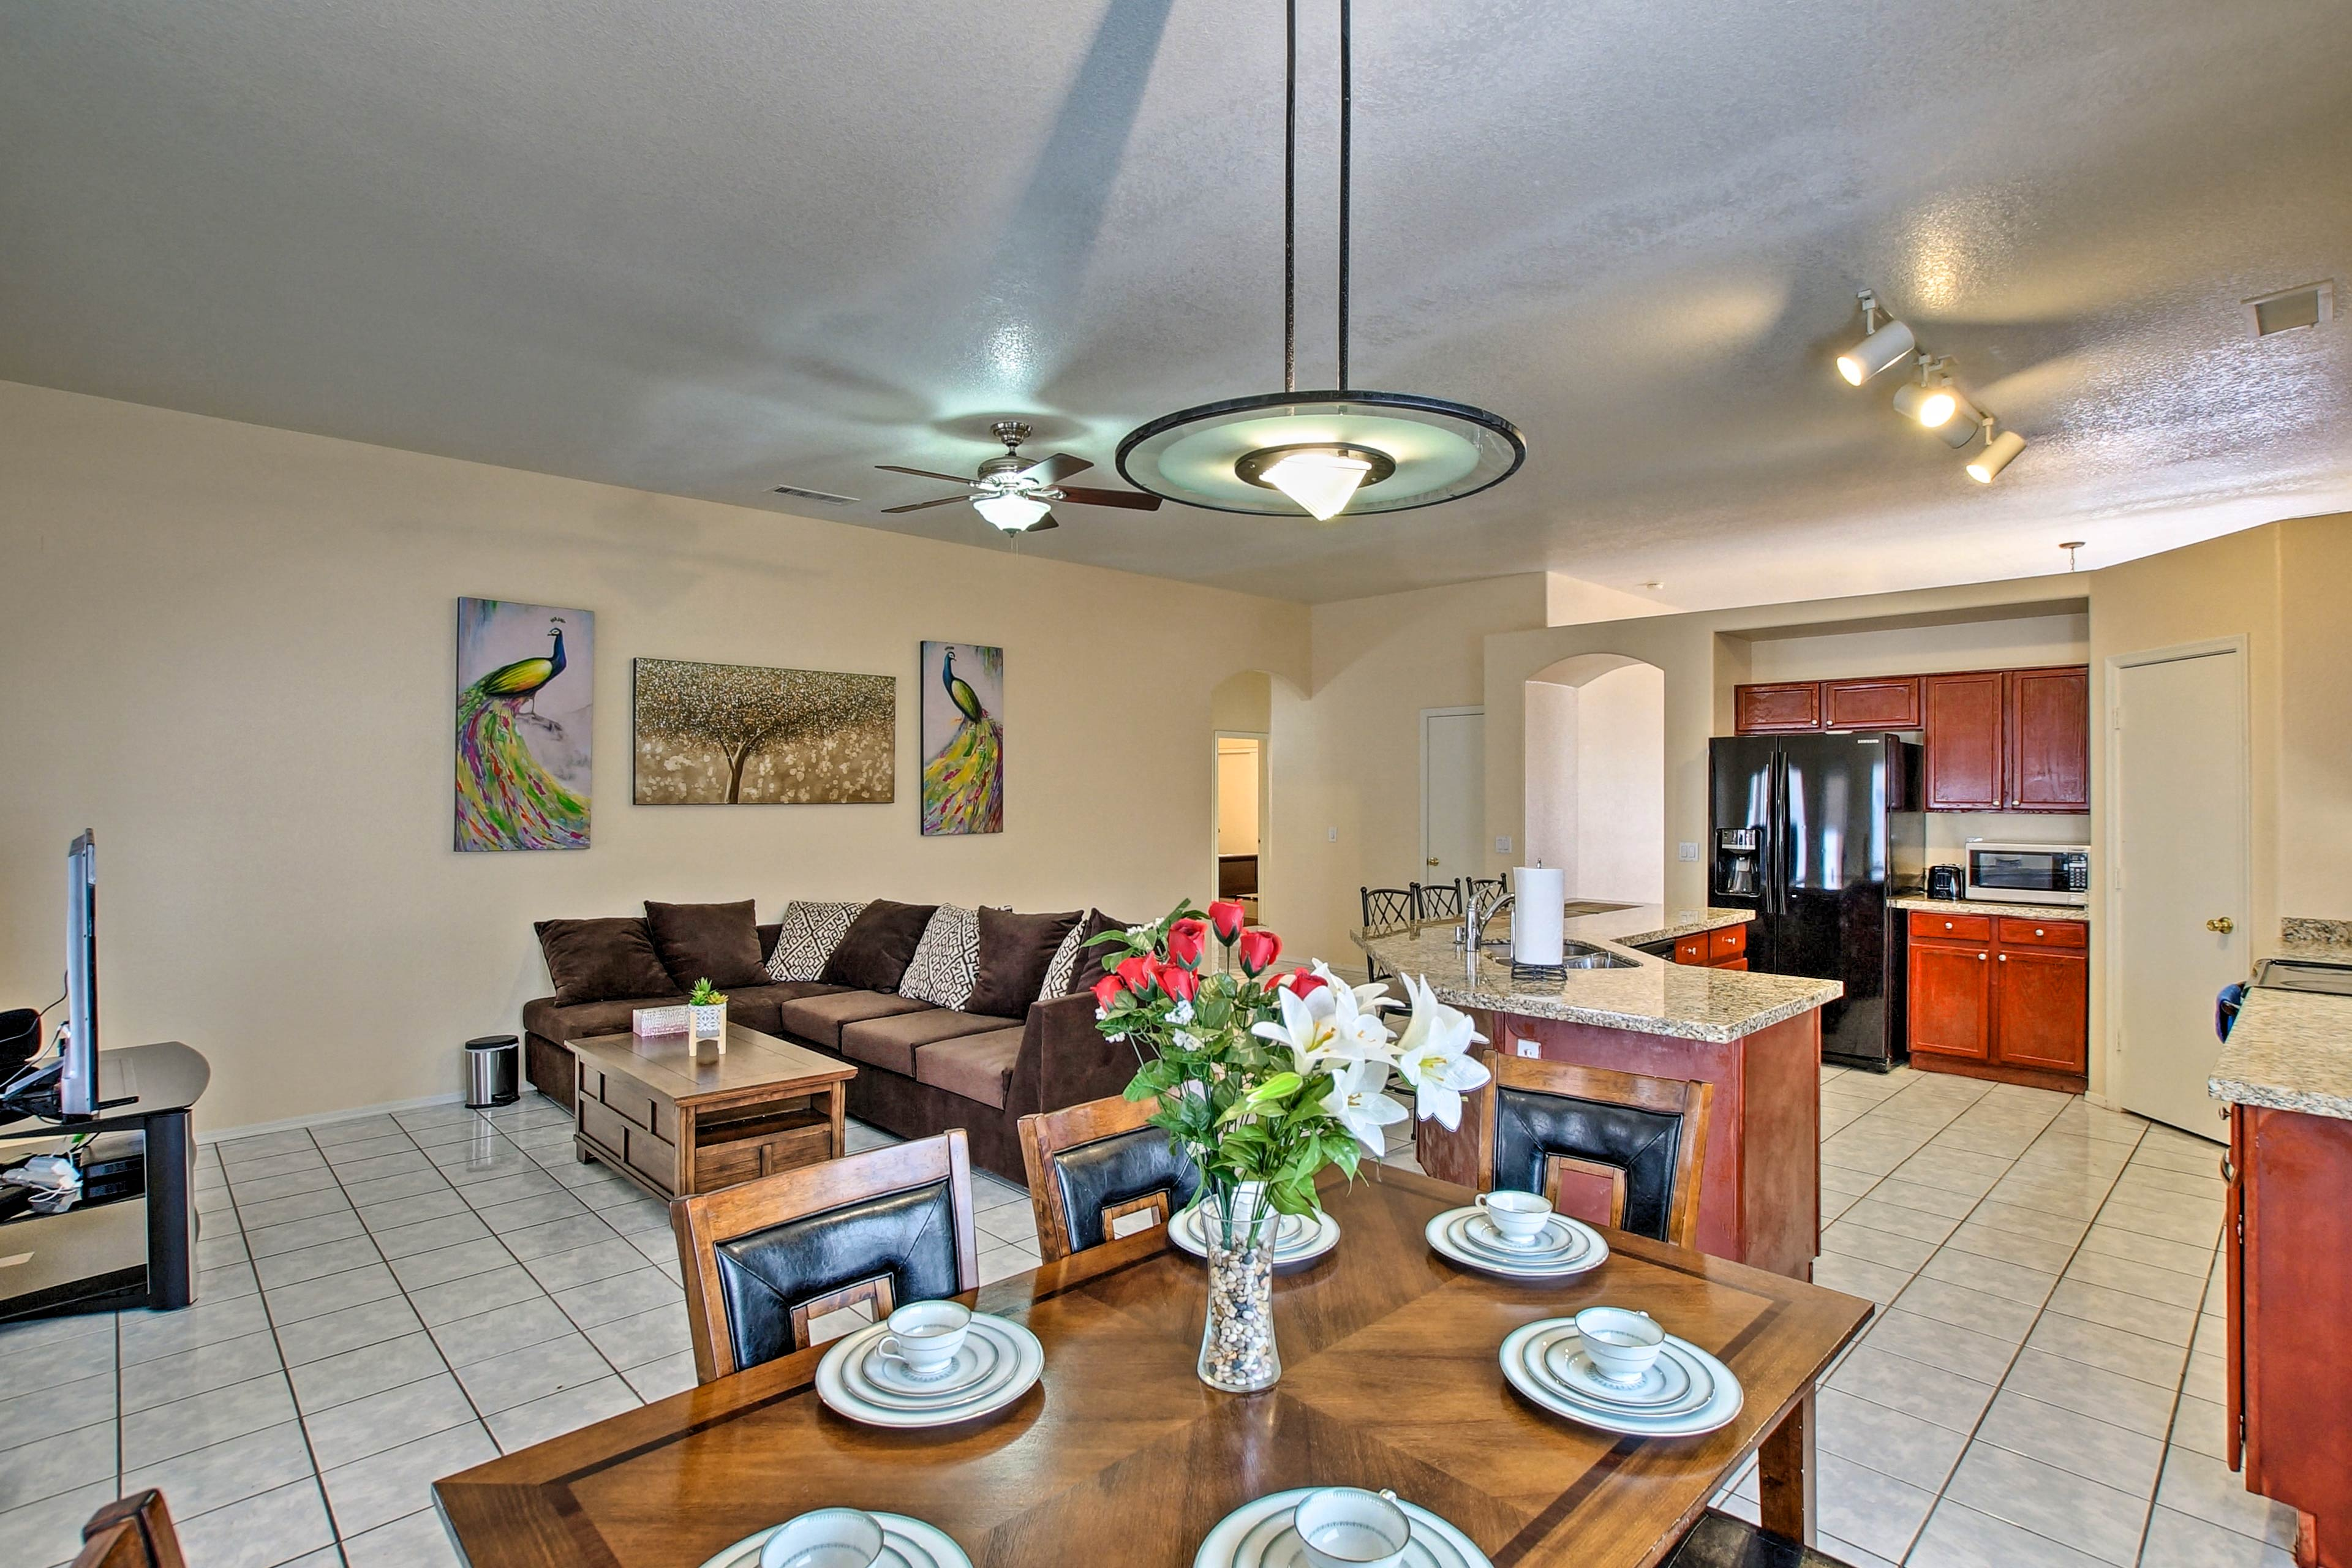 The interior is lined with tasteful decor and top-notch furnishings.